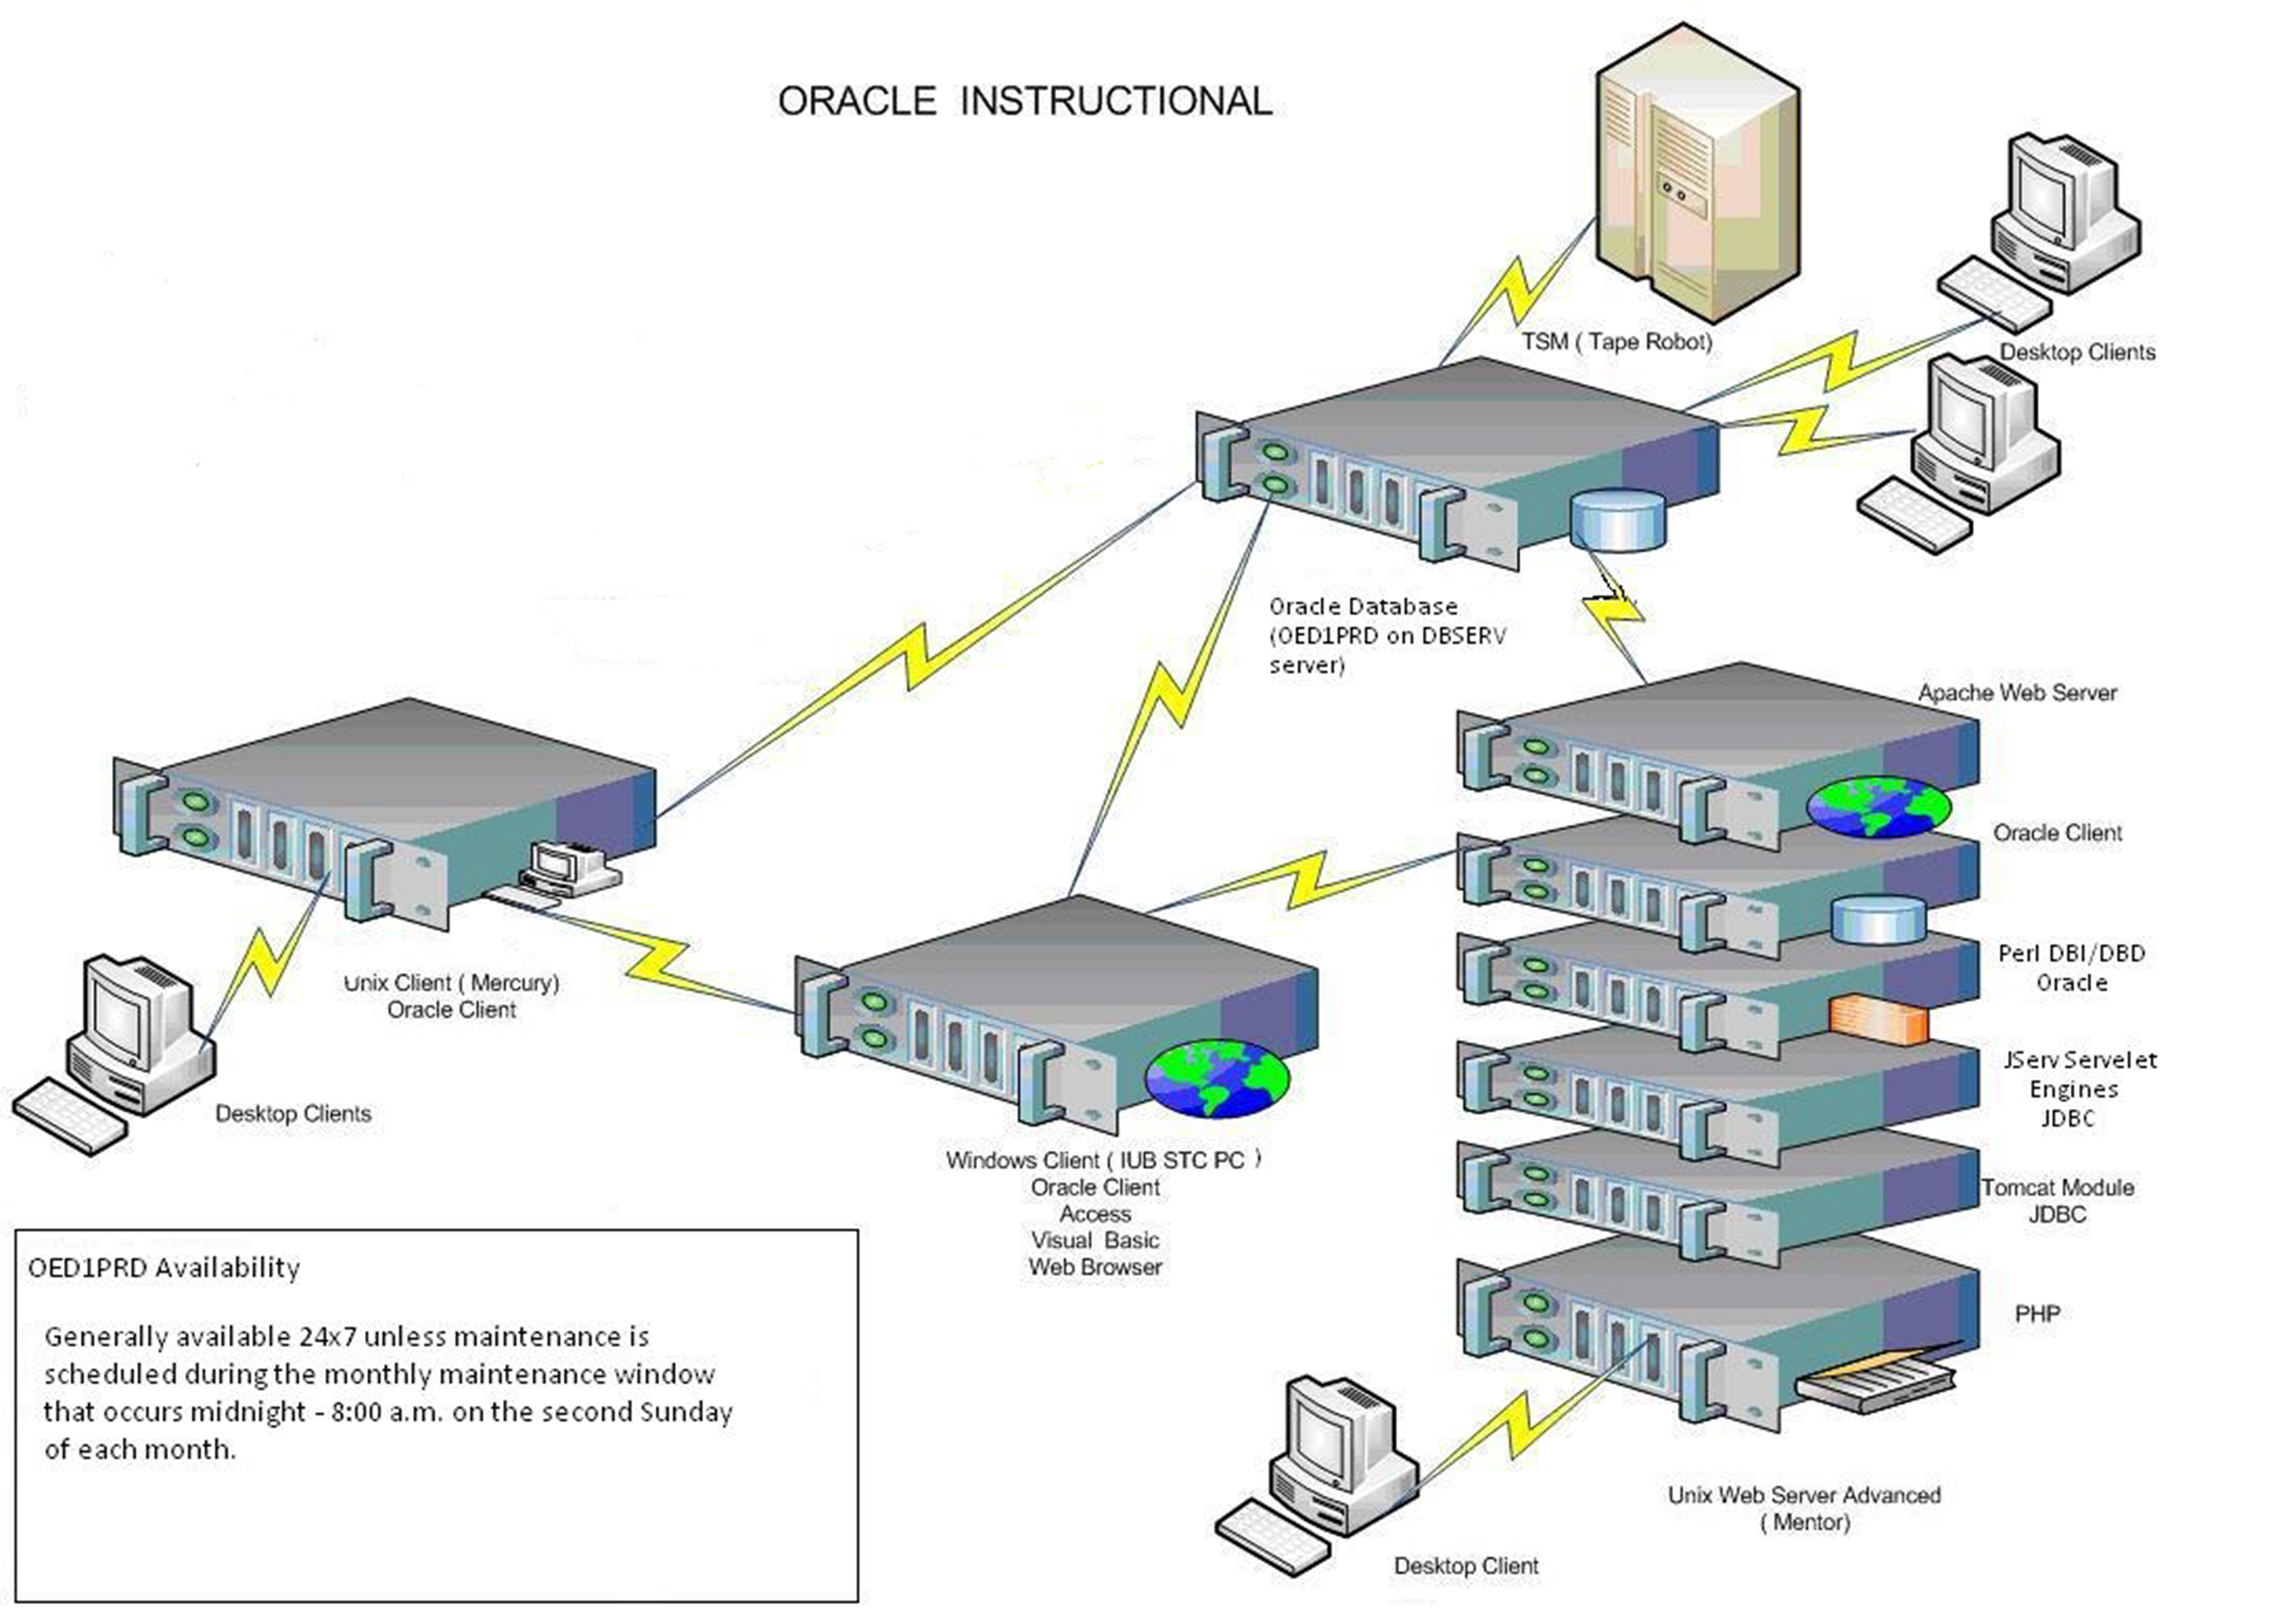 An overview of Oracle instructional environments at IU